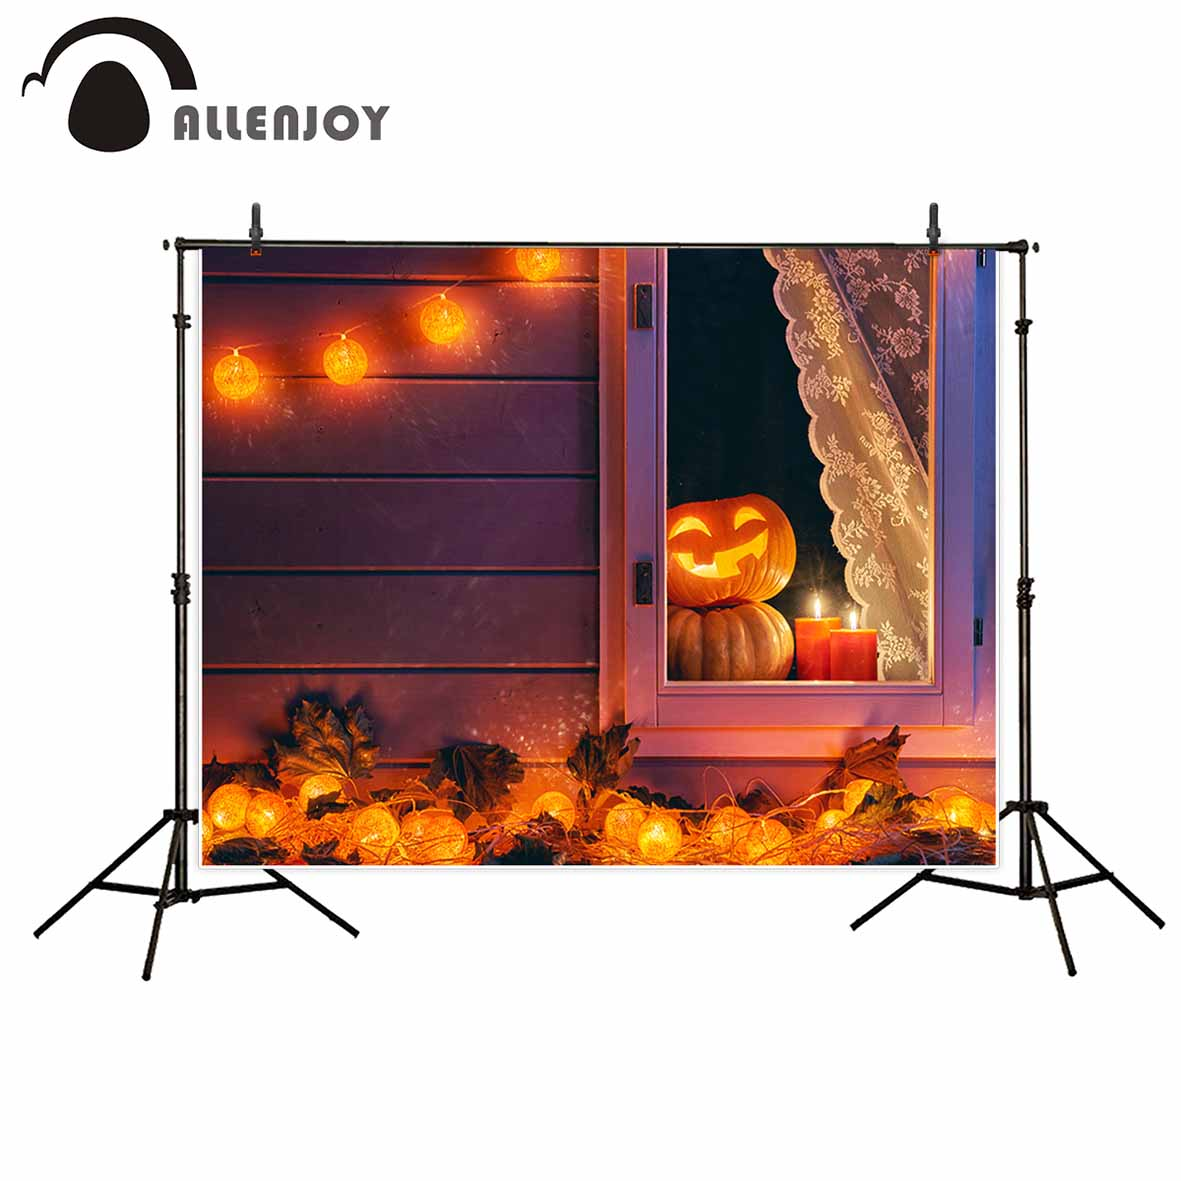 Allenjoy photographic background Lantern Thriller Pumpkin Light Candle Halloween Photographic photocall for study Photo backdrop